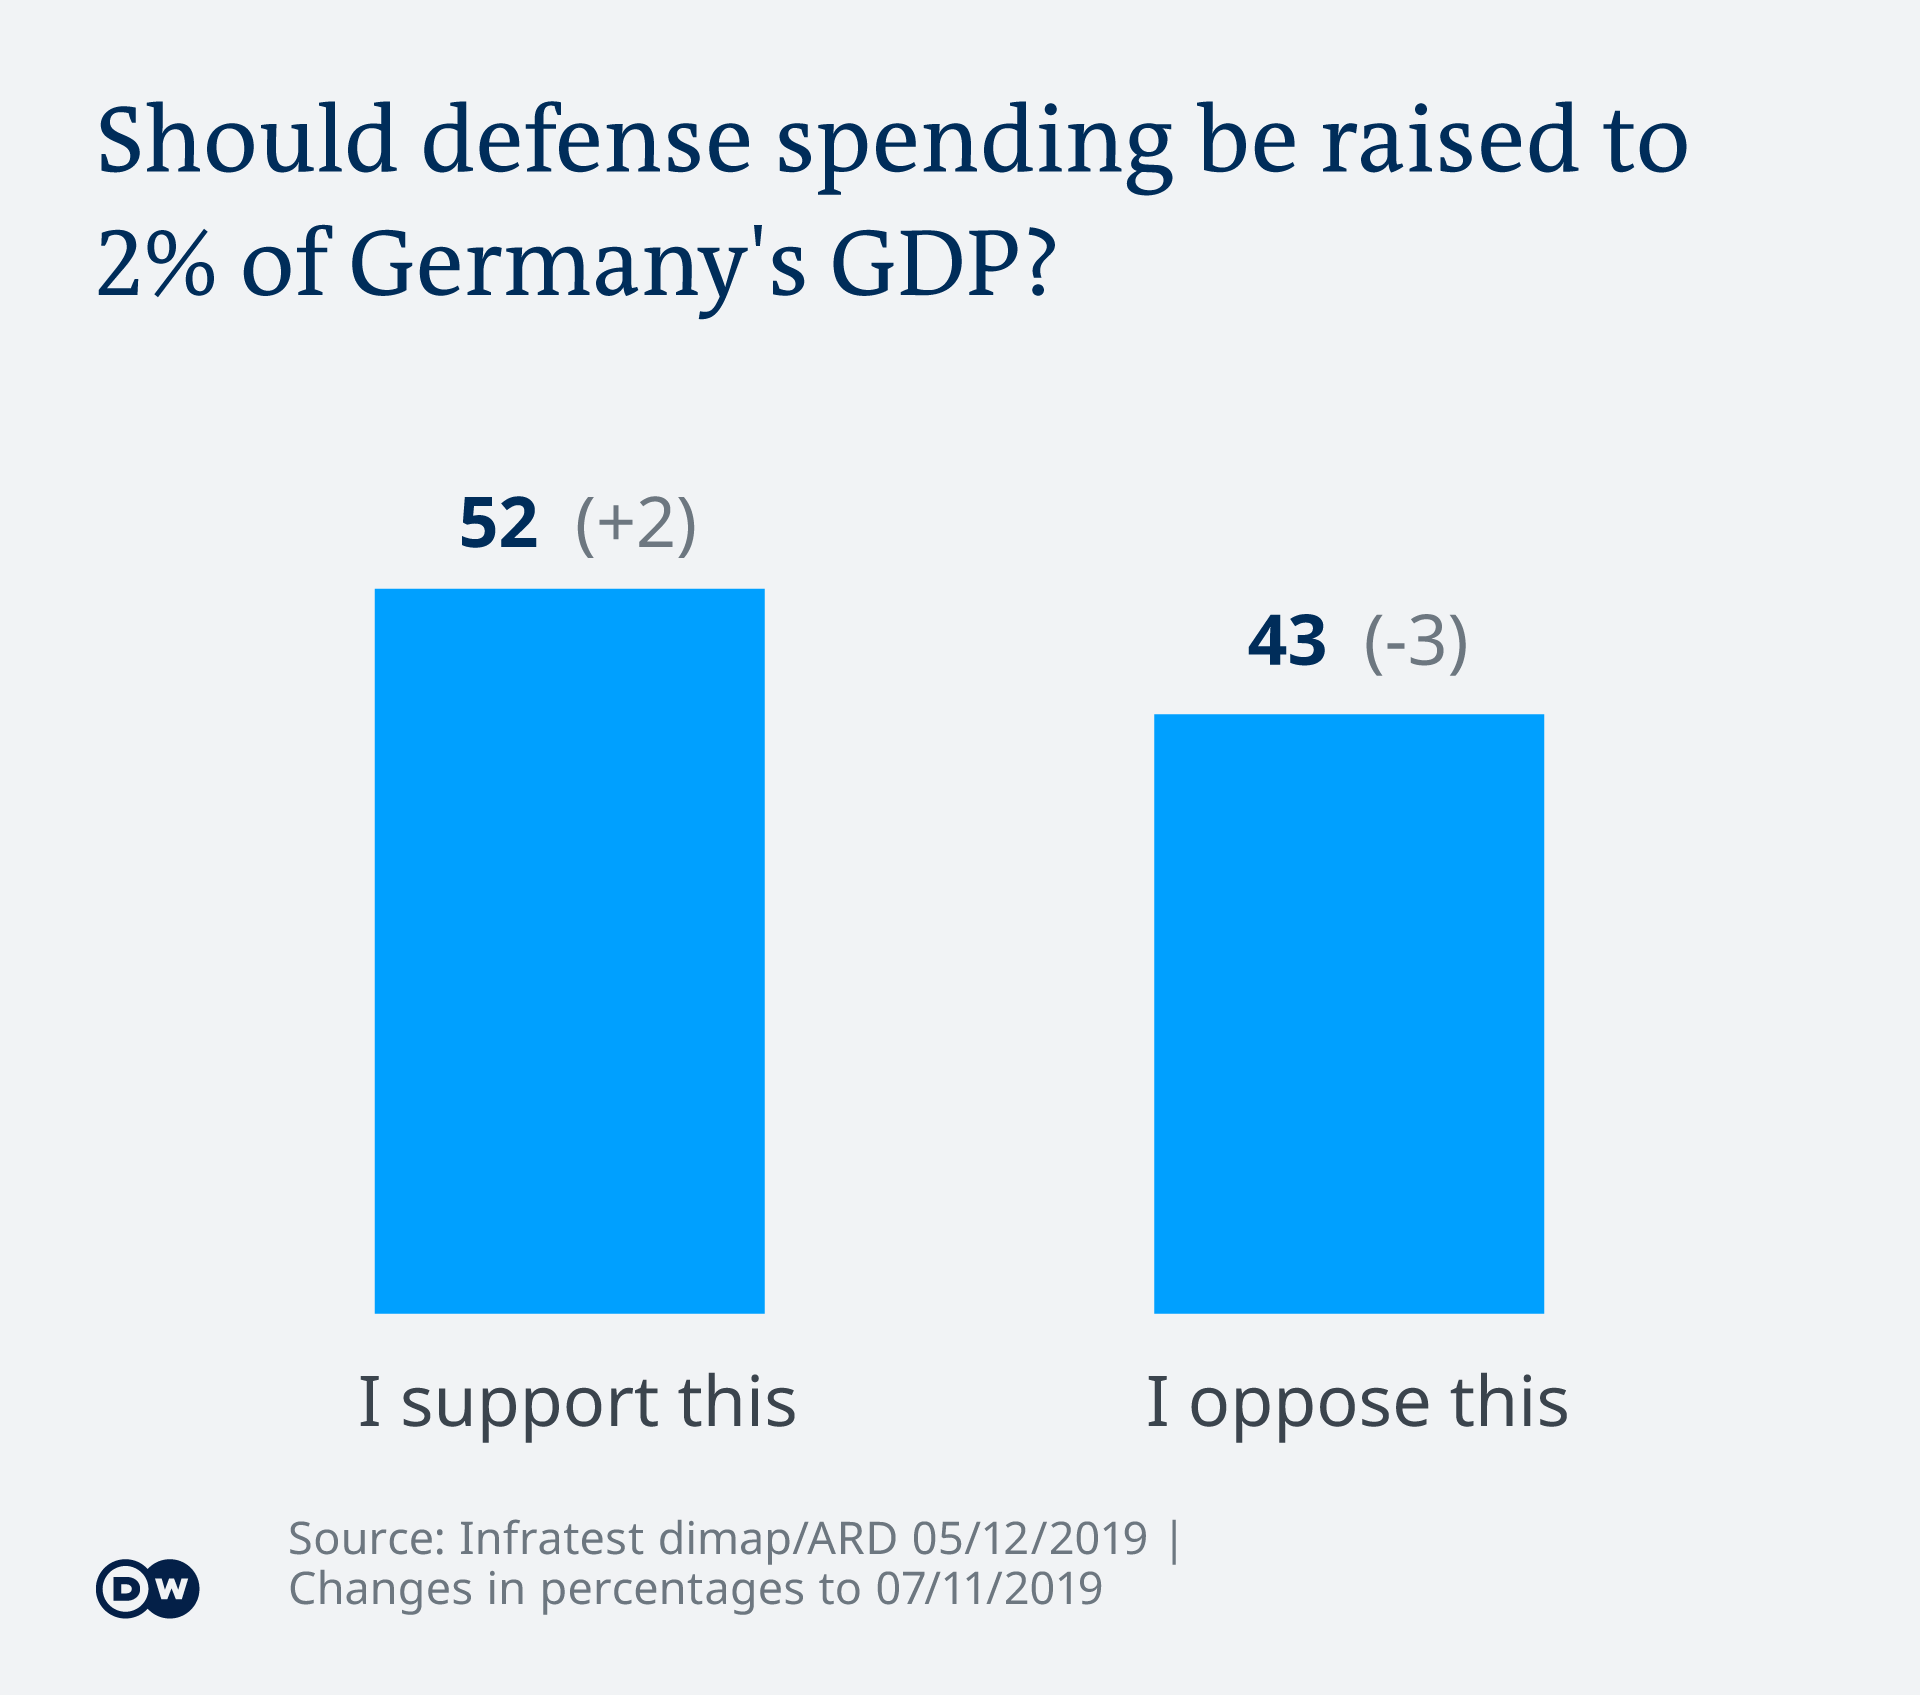 Infographic showing people's opinion on whether defense spending should be raised